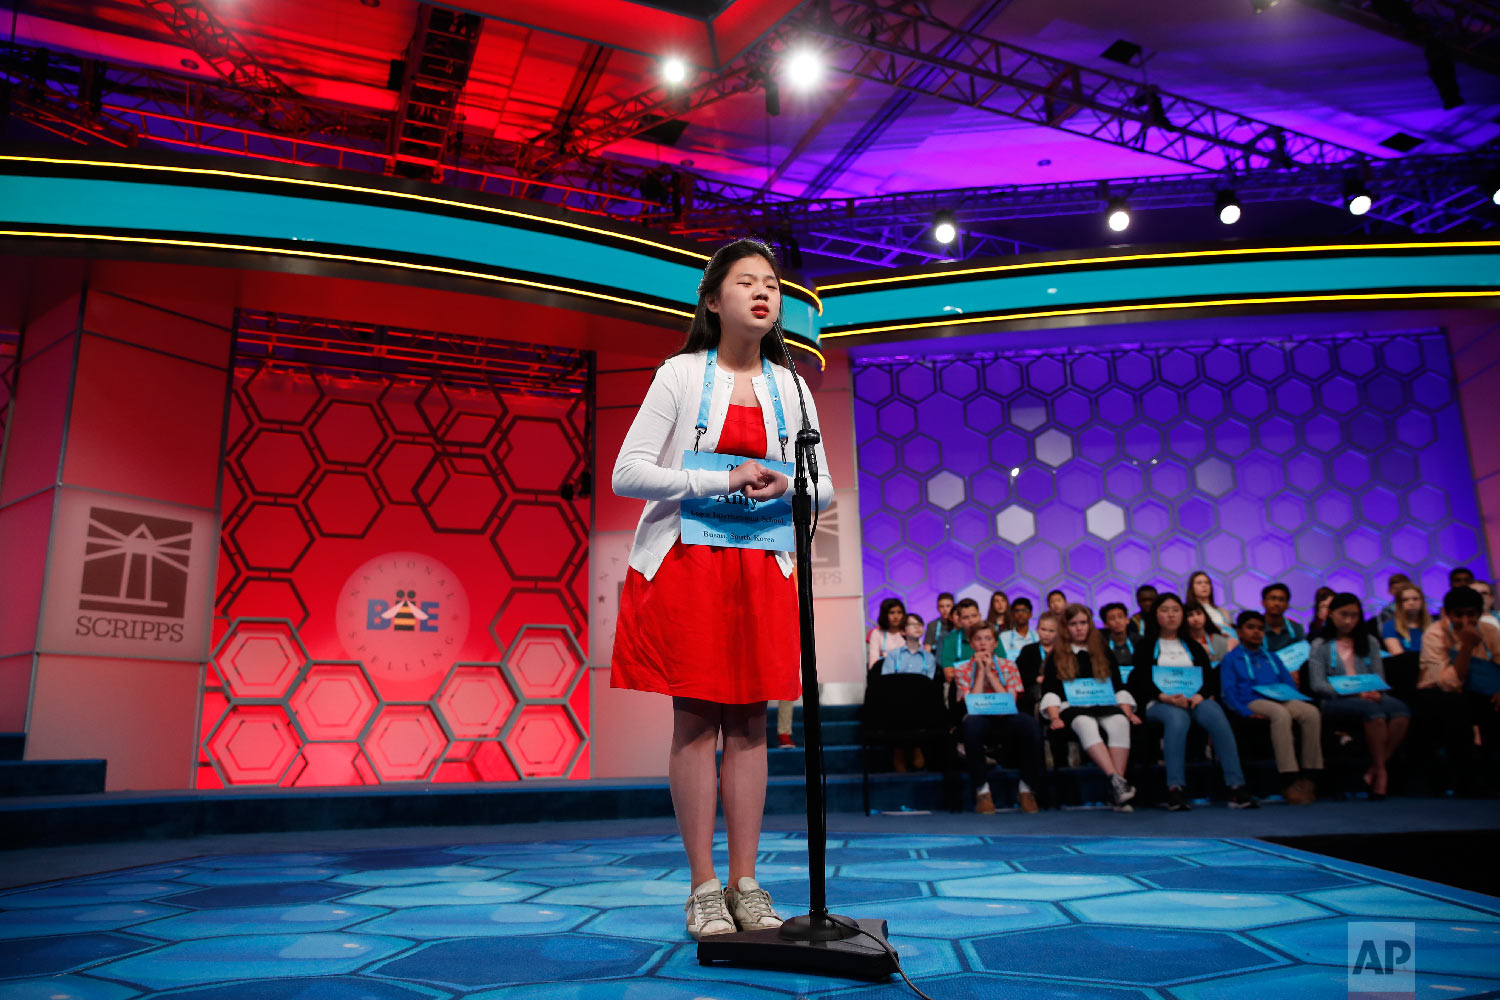 Amy Jung, 15, from Busan, South Korea, spells a word incorrectly during the 3rd Round of the Scripps National Spelling Bee in Oxon Hill, Md., Wednesday, May 30, 2018. (AP Photo/Carolyn Kaster)